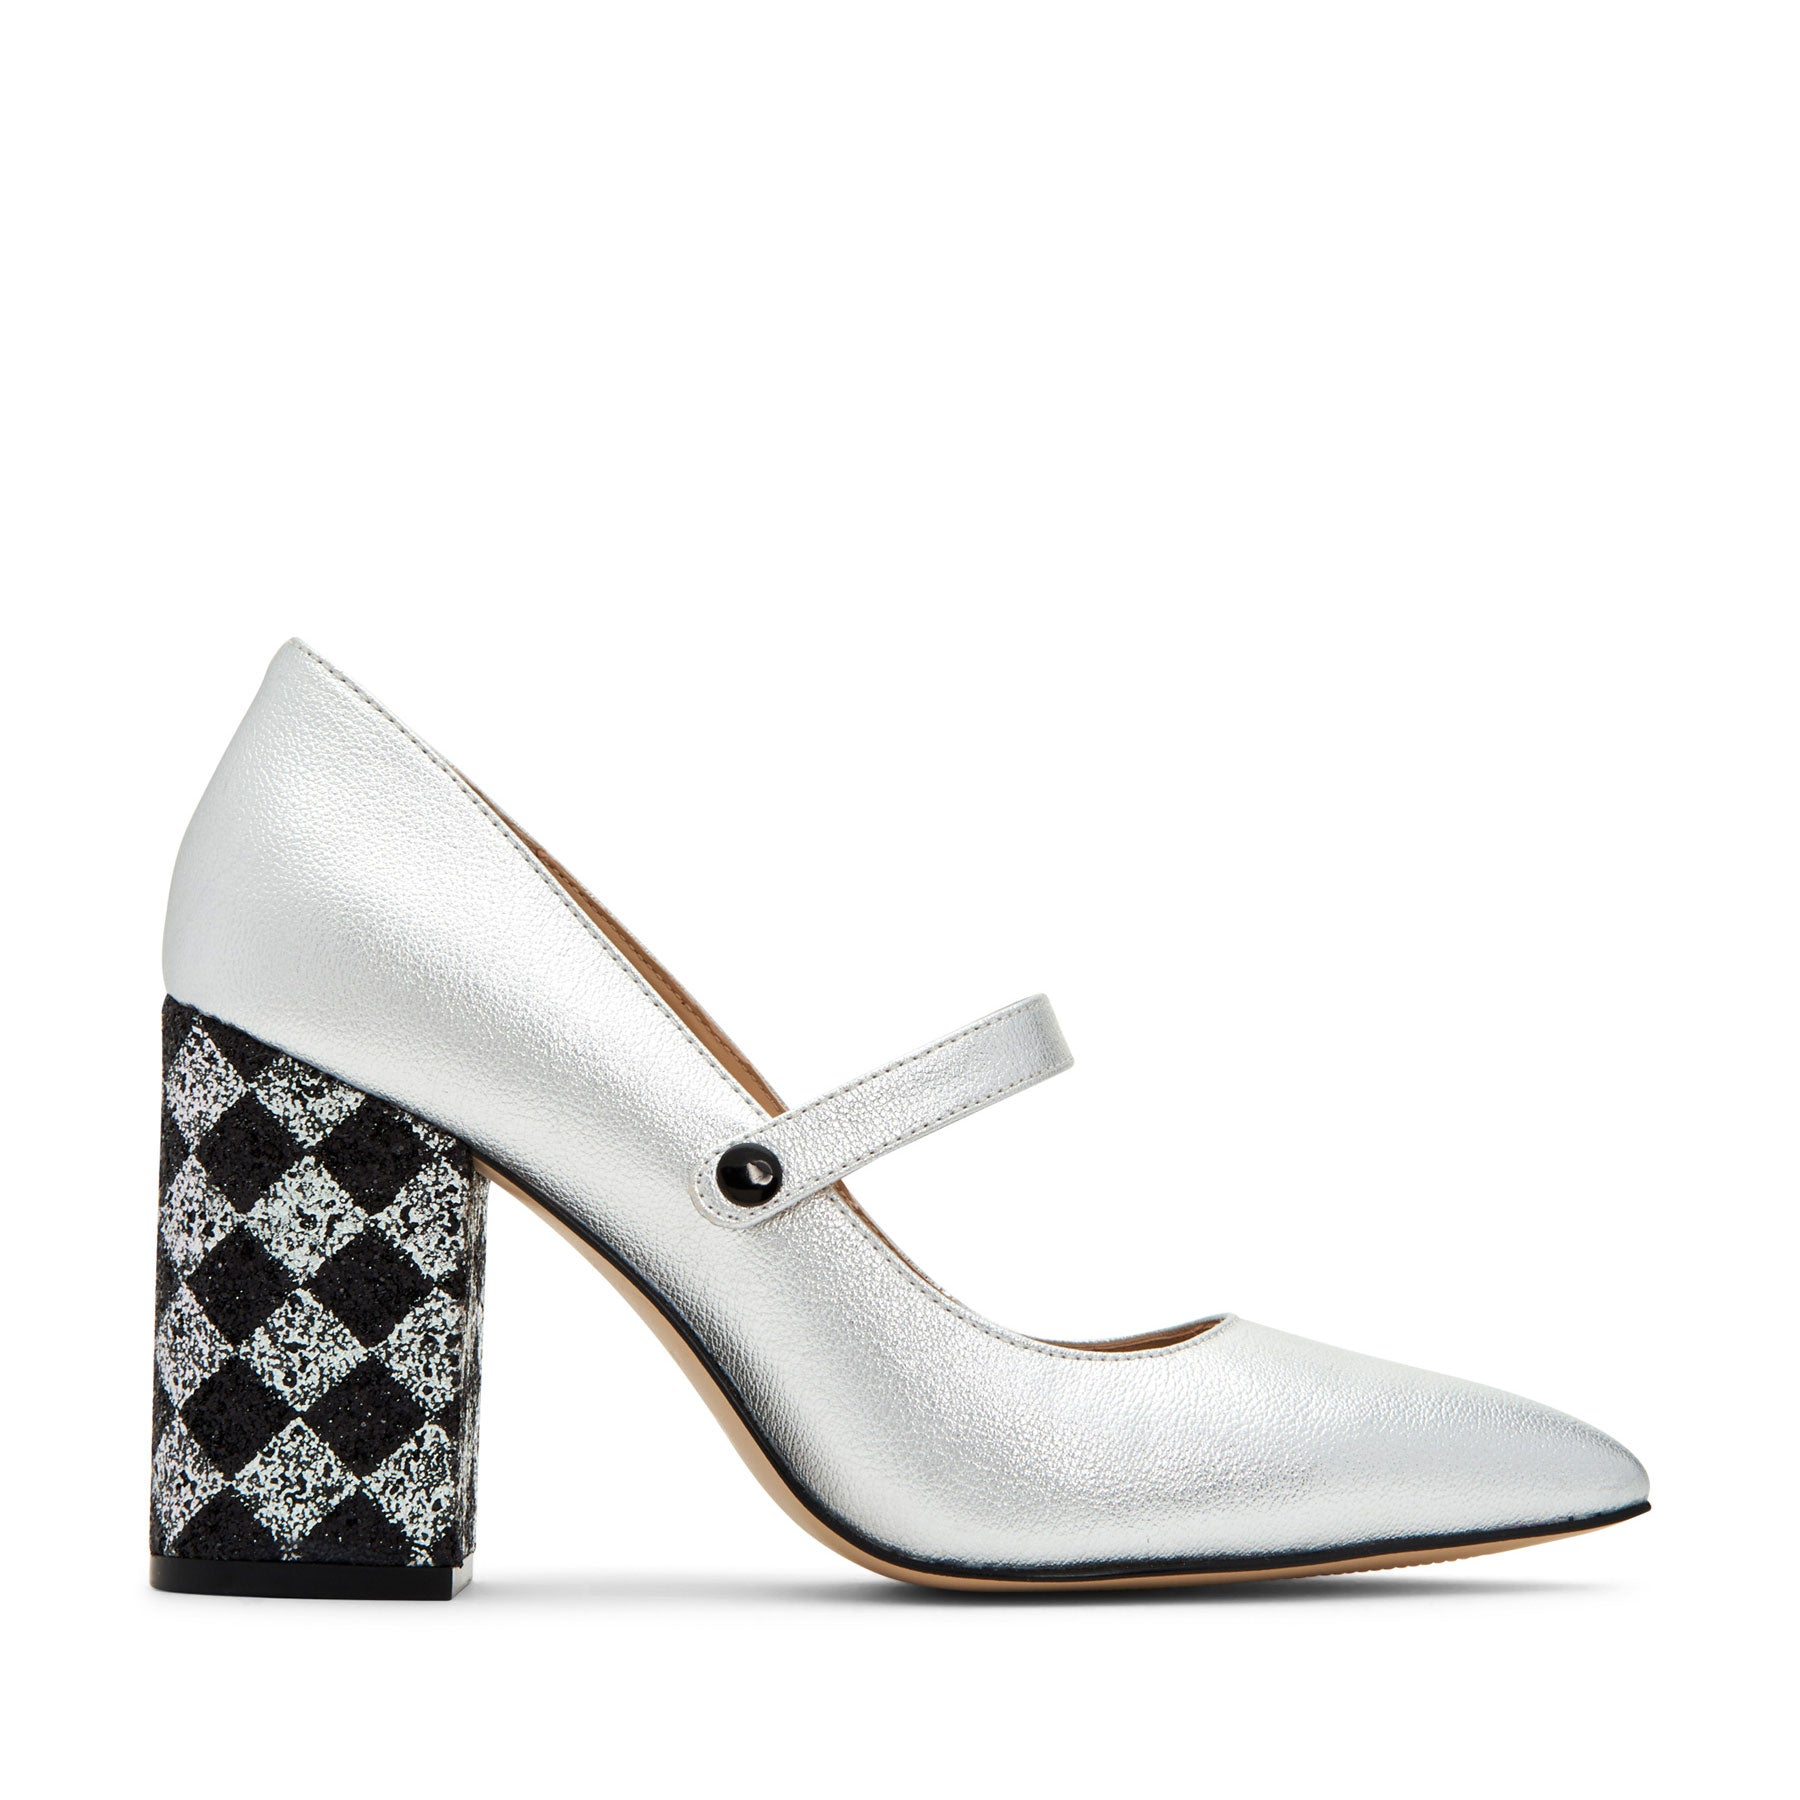 katy perry heeled pumps in silver size 5   the june